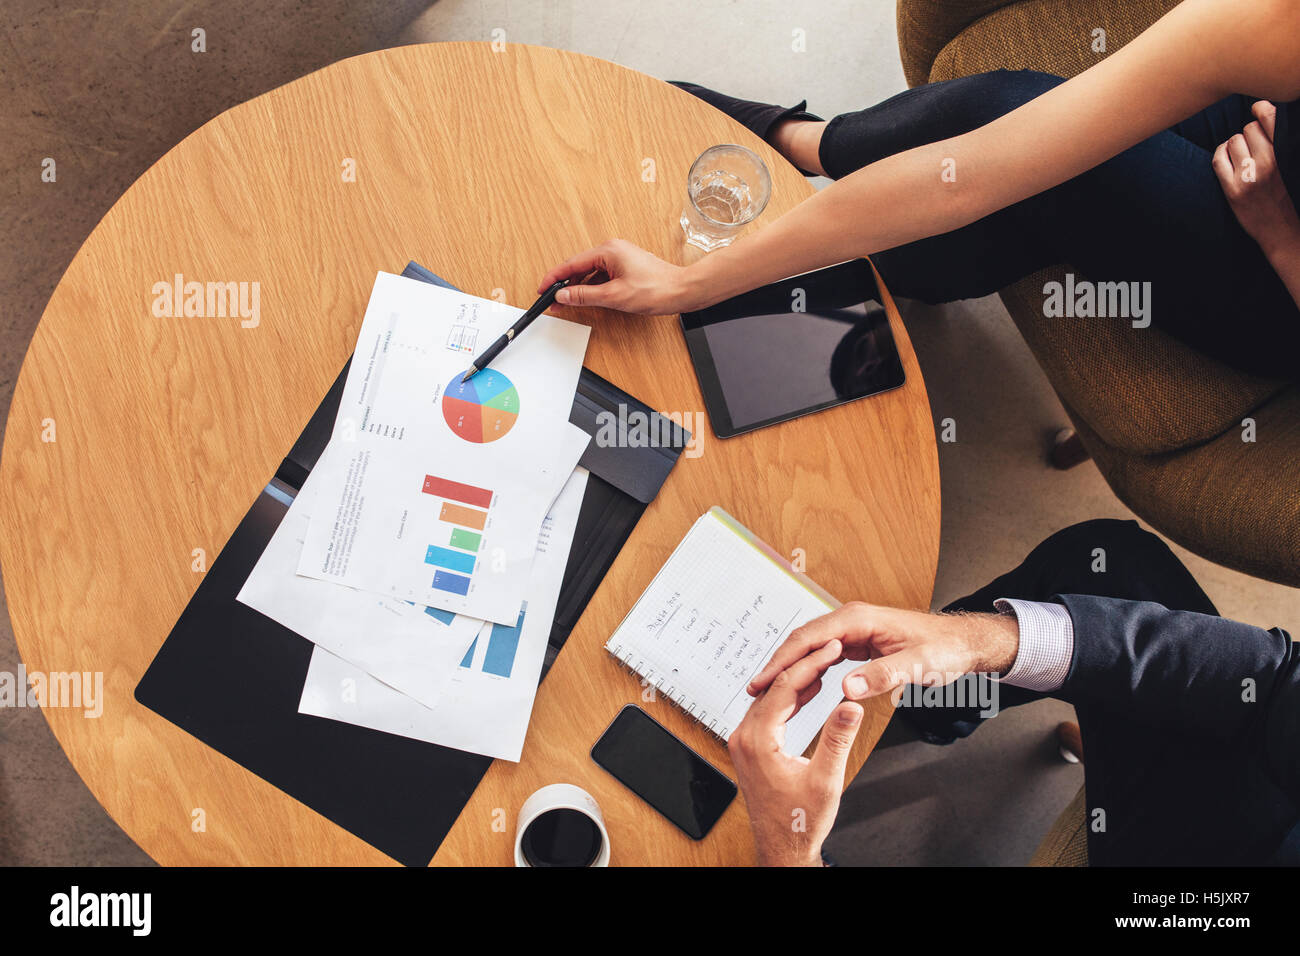 Top view of two business people working with charts around table. Businessman and woman going through business projections - Stock Image